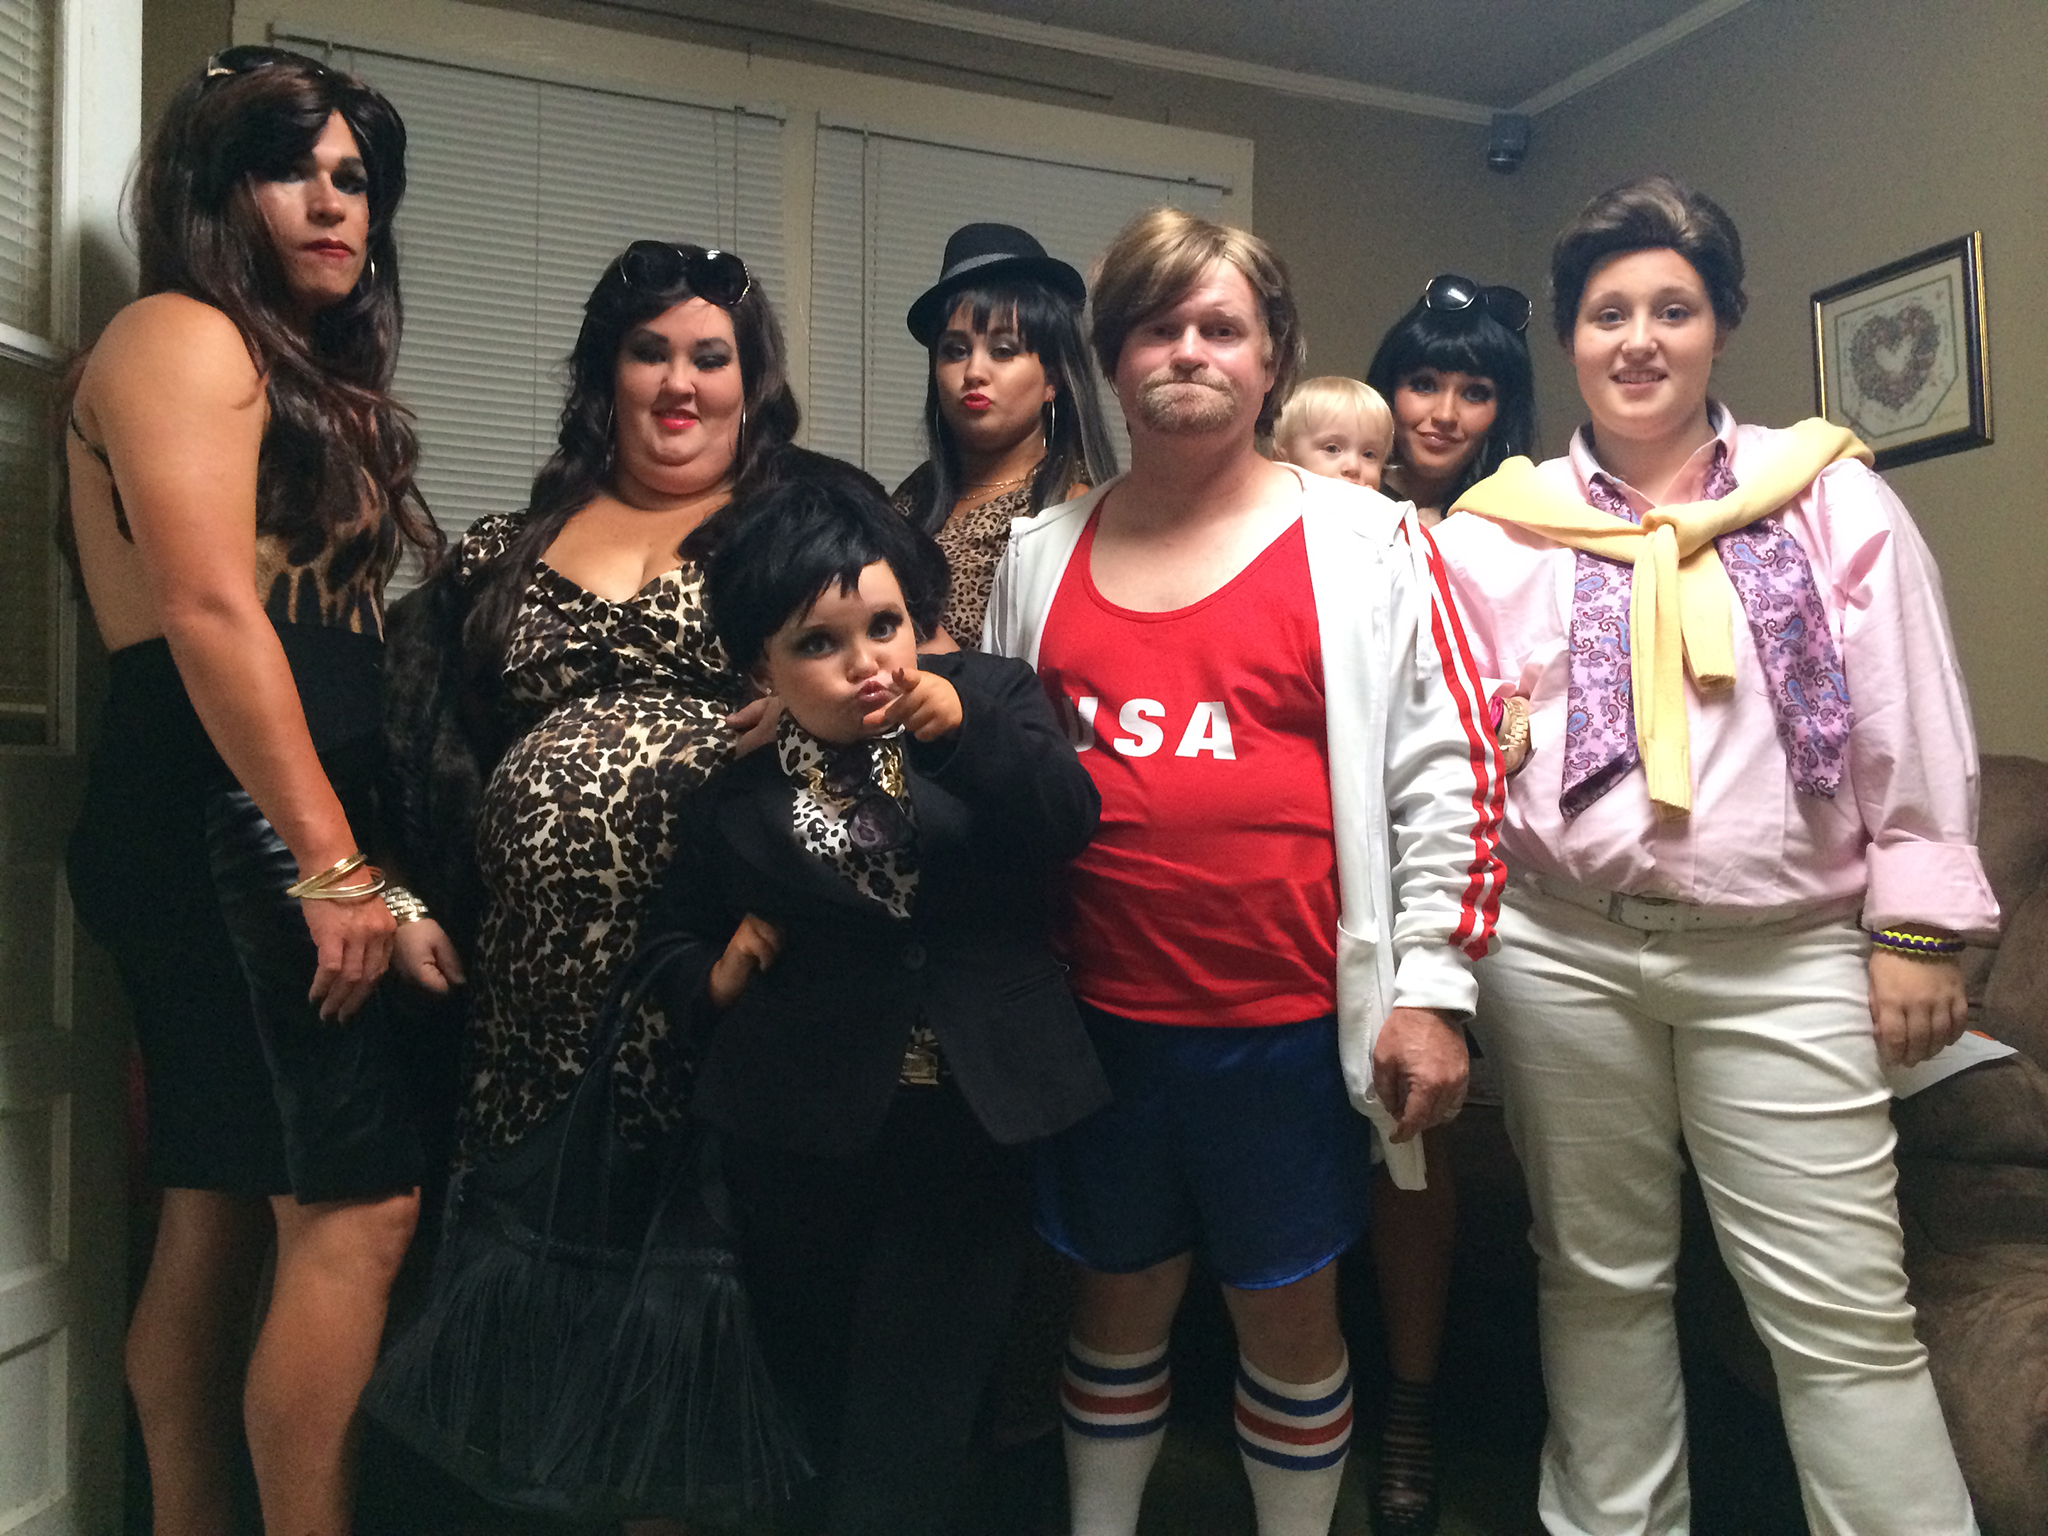 The cast of 'Here Comes Honey Boo Boo' dressed as the Kardashians for Halloween (TLC)